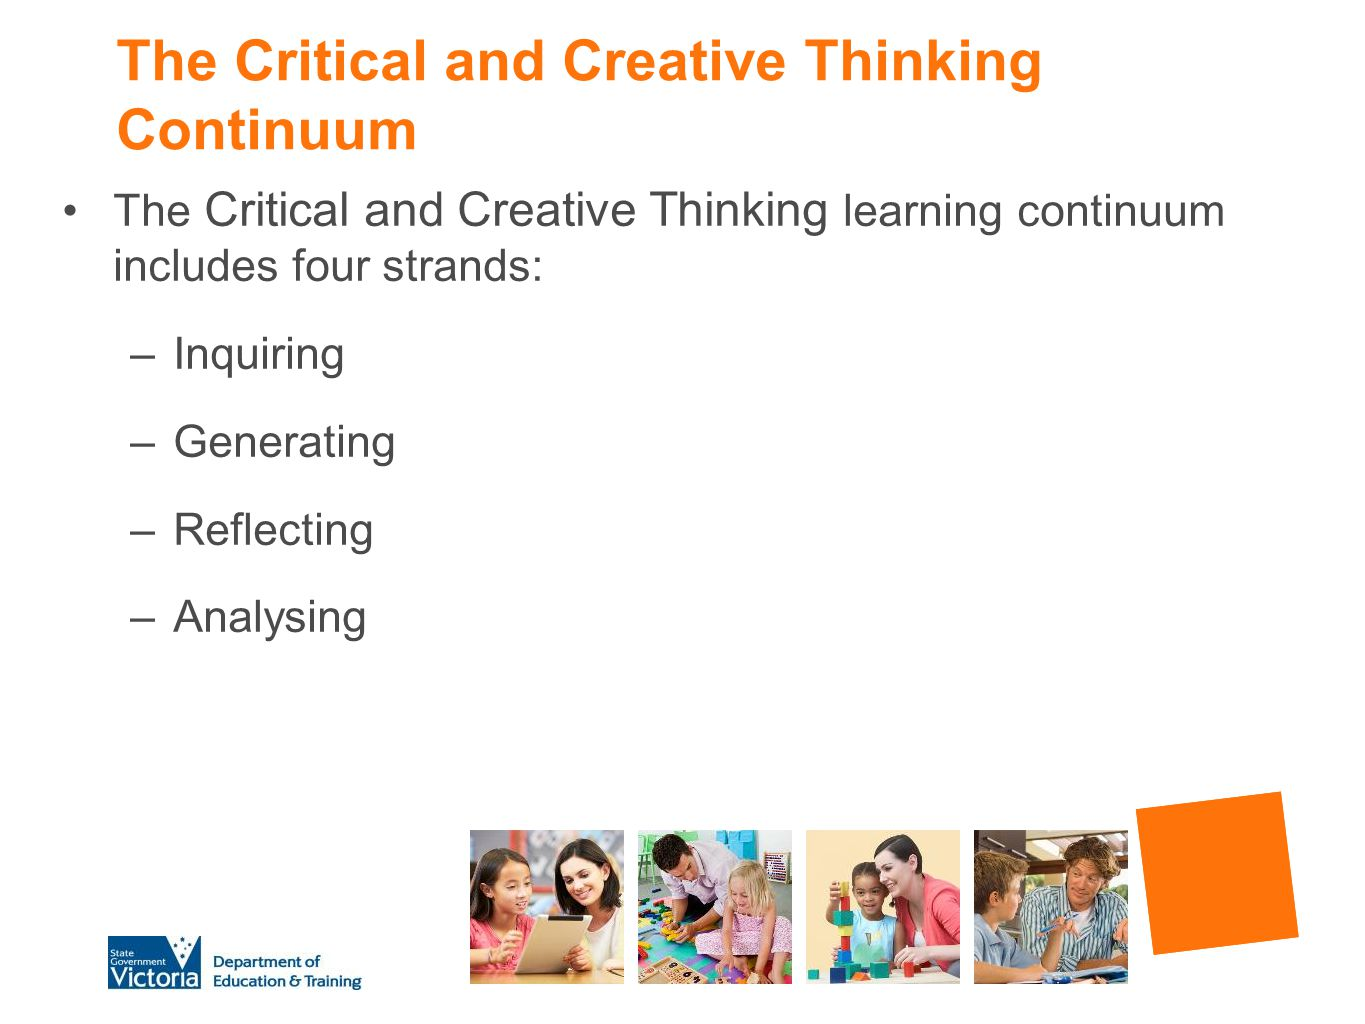 The Critical and Creative Thinking Continuum